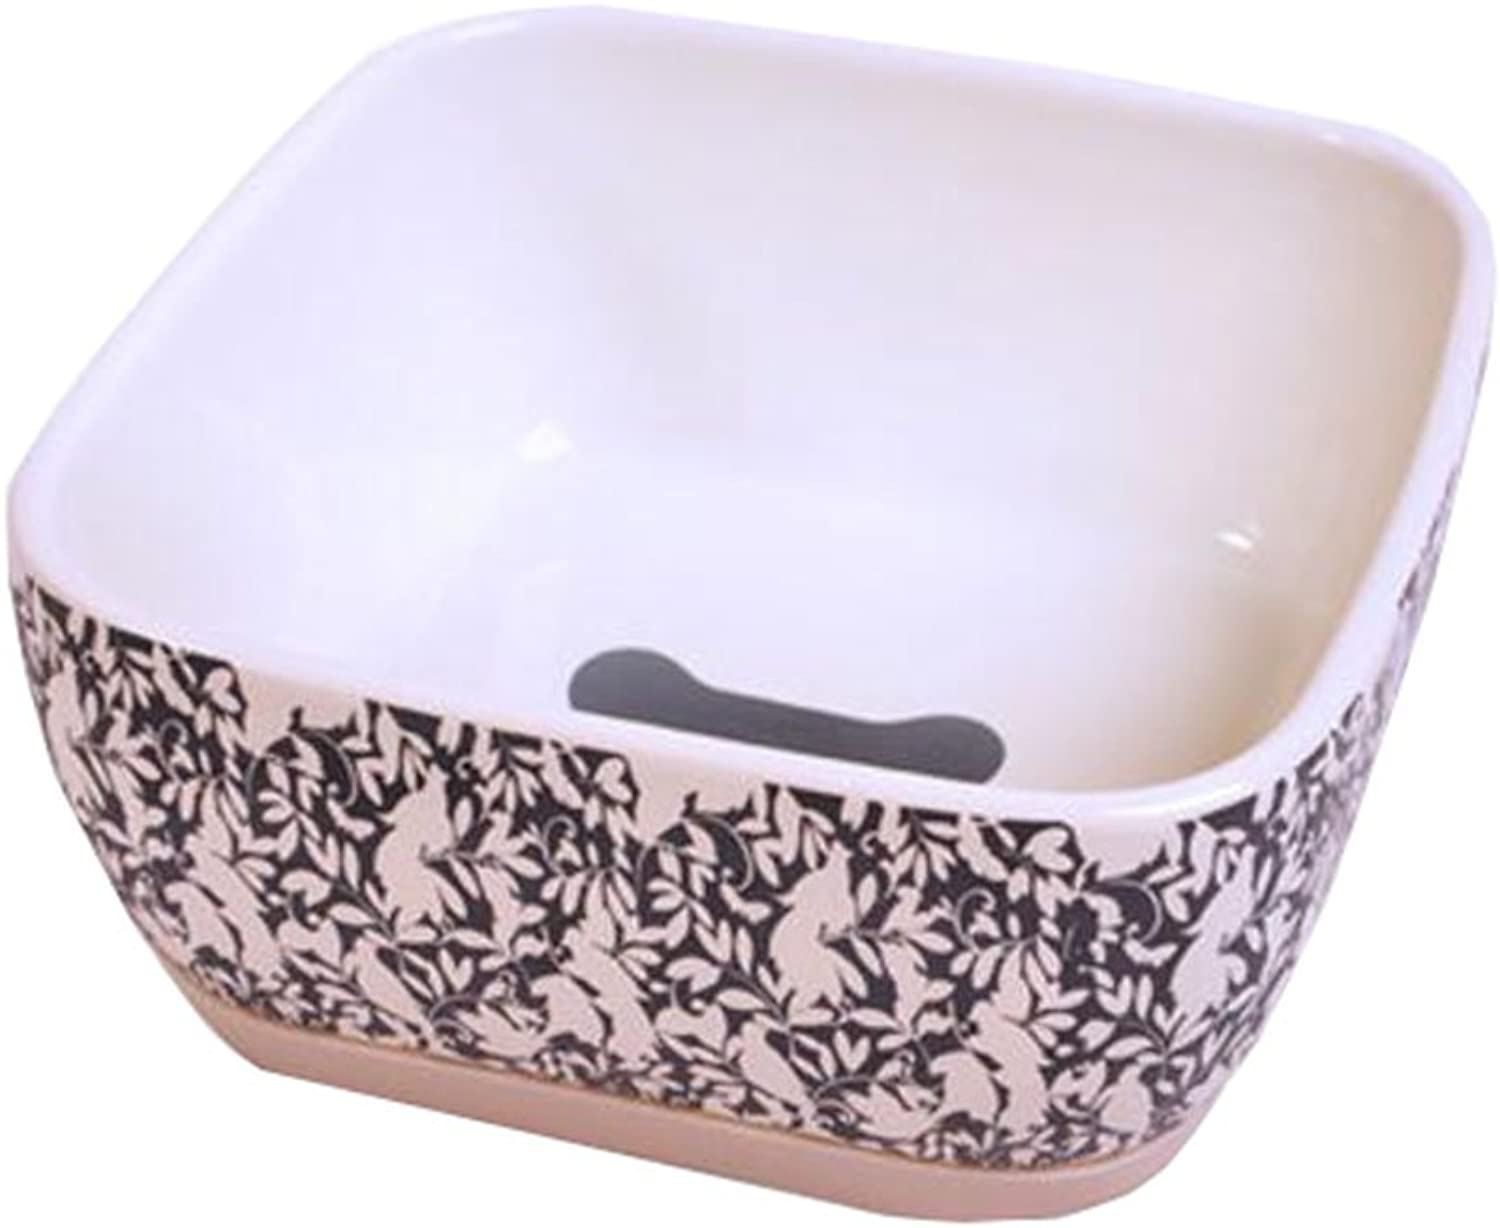 One Ceramic Feeding Pot Pet Bowl Dog Bowl Cat Bowl for Food & Water 15x15x7.5CM( 01)